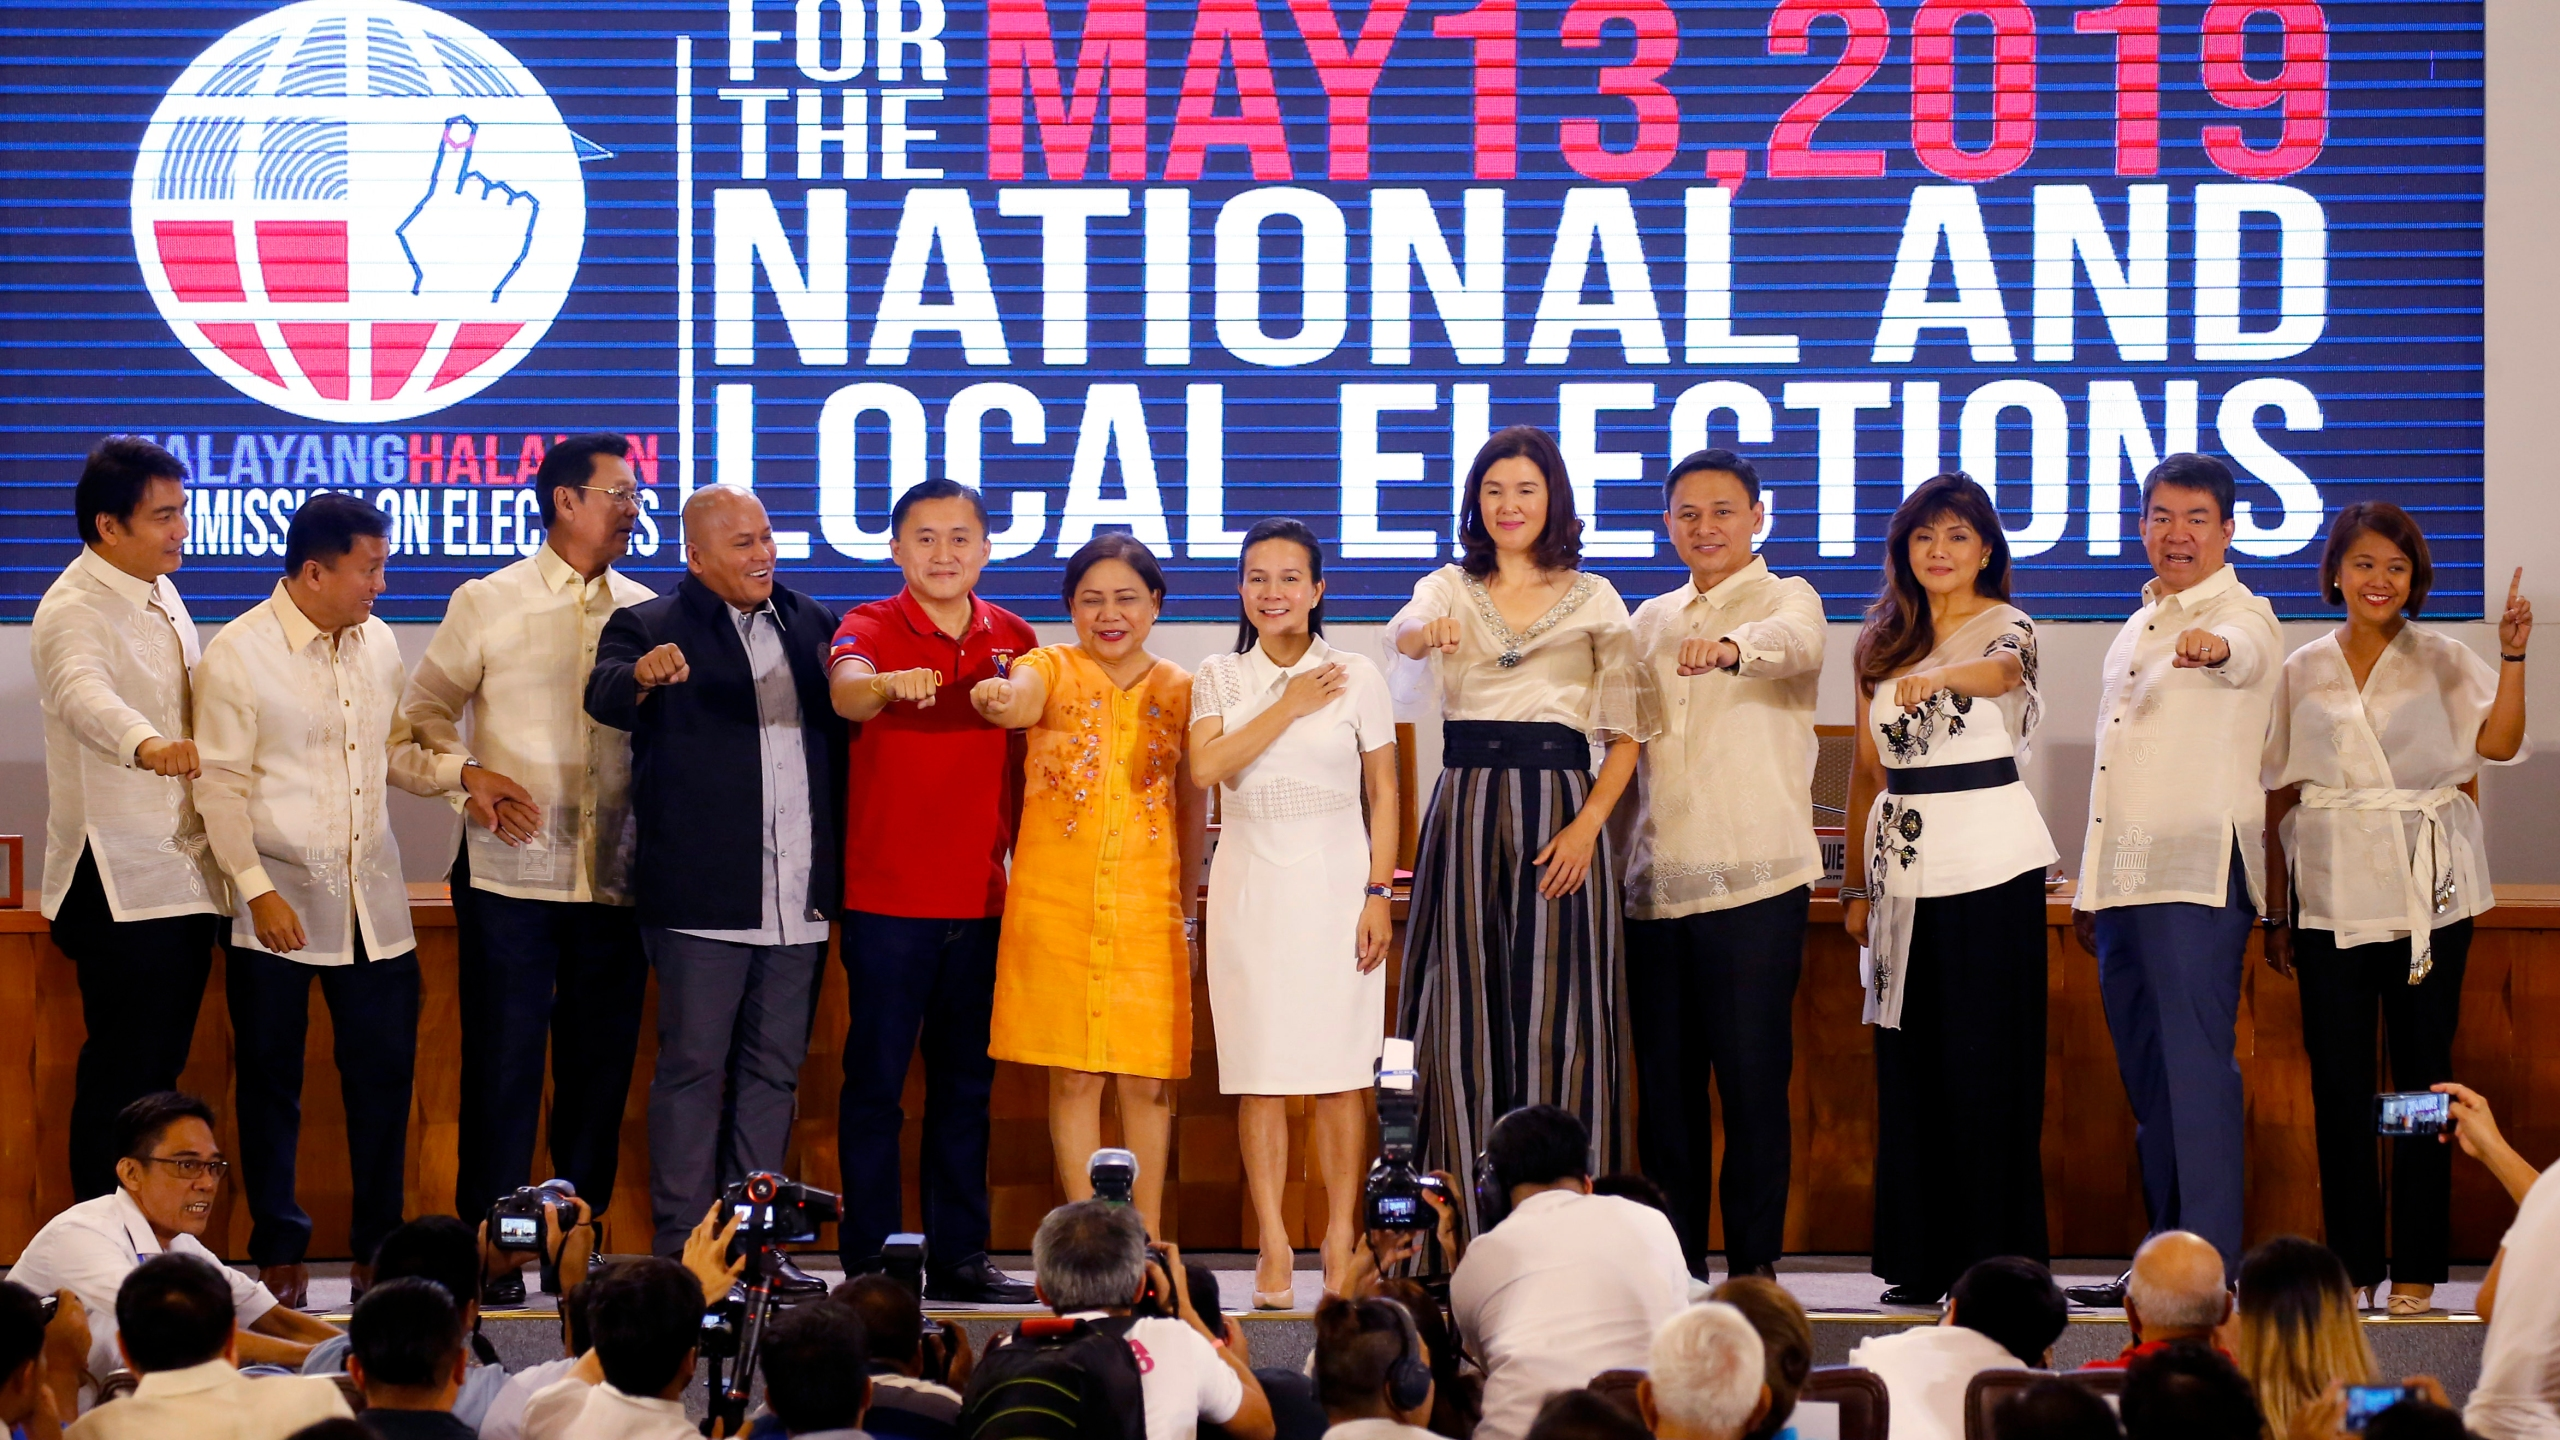 Philippines Elections_1558508764758